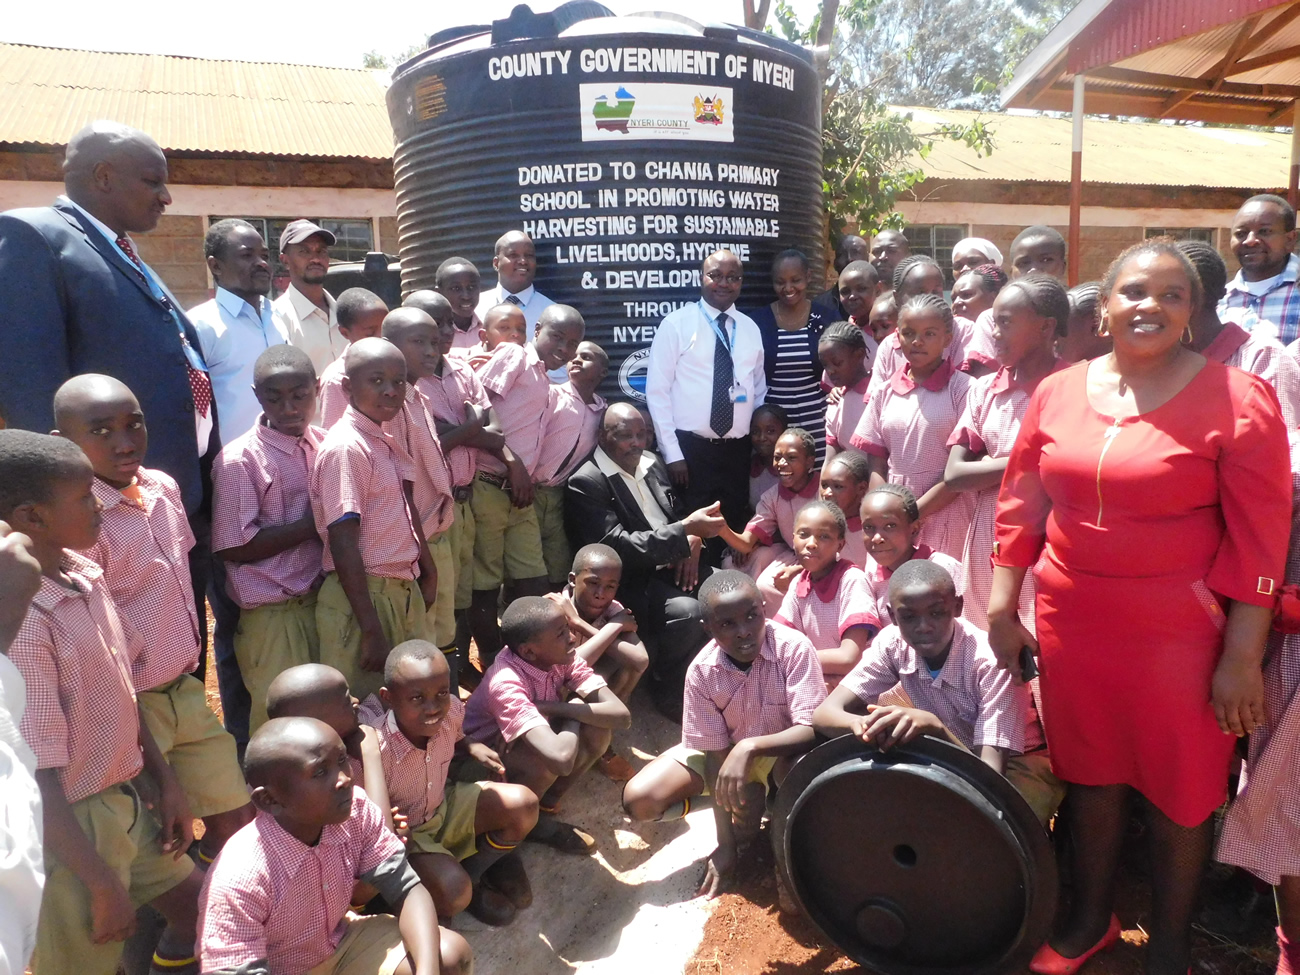 Water tank Donated to Chania Primary School to harvest rain water